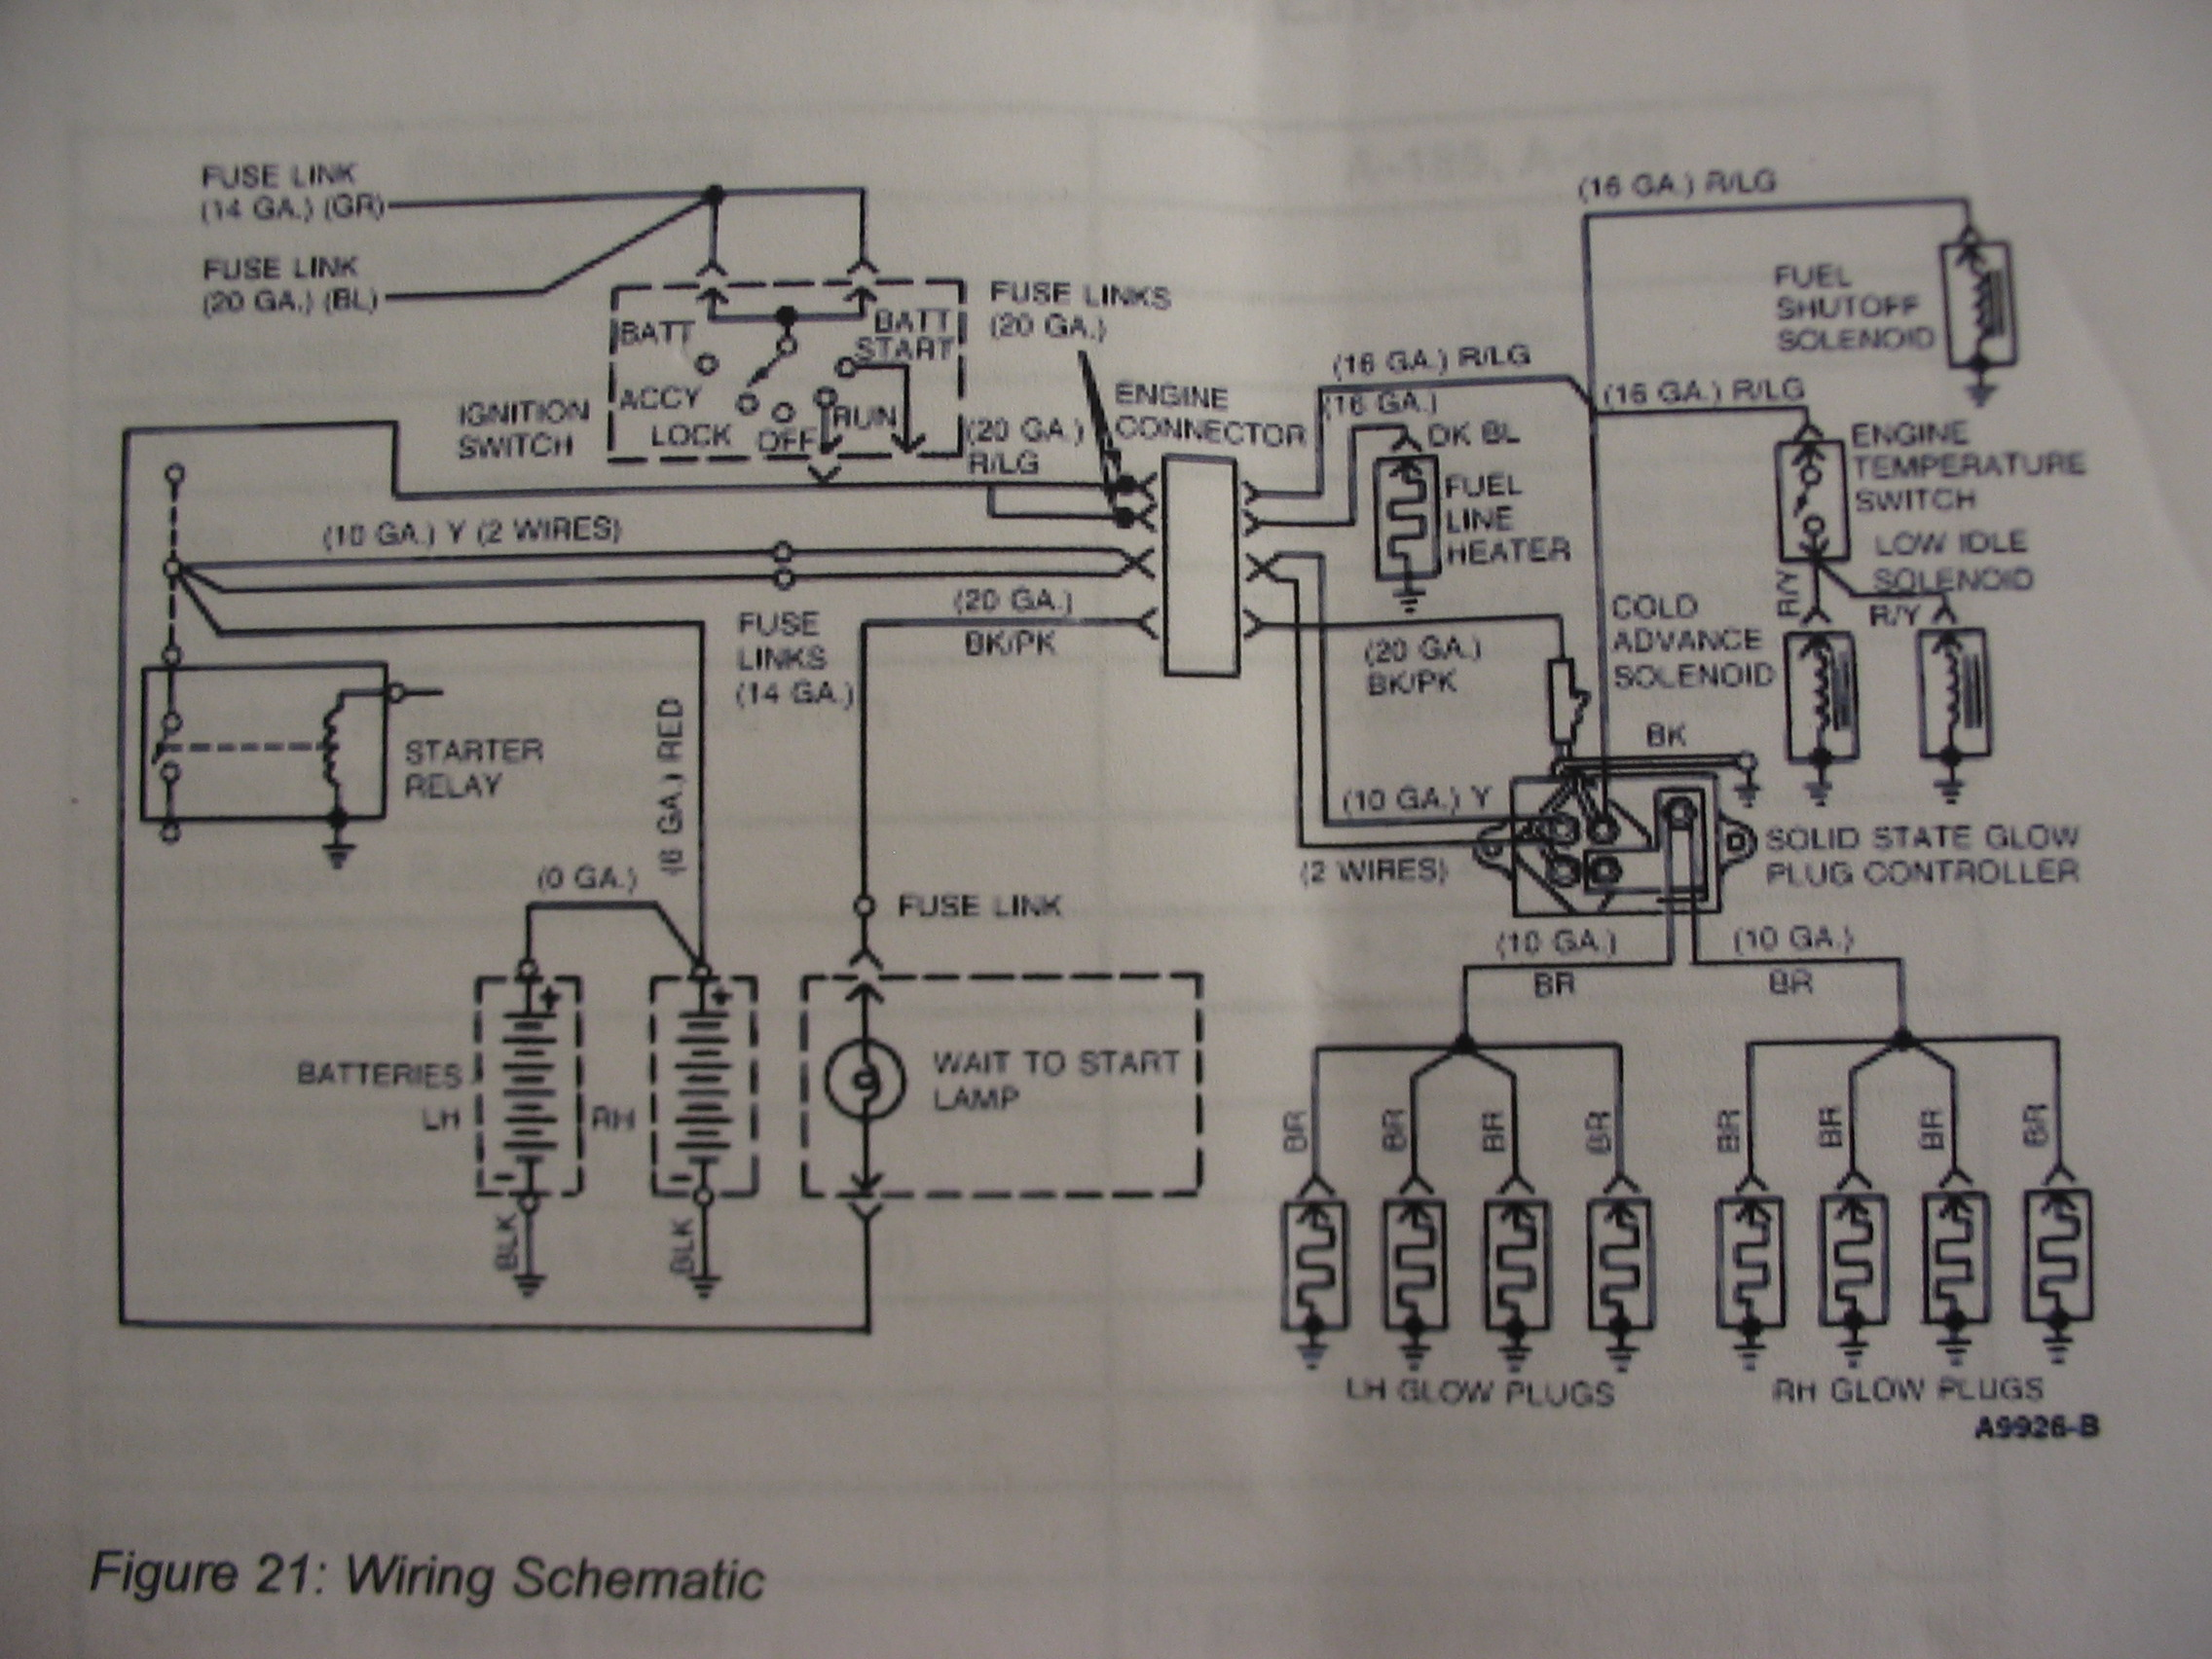 02 F350 Fuse Link Wiring Diagram Simple Schema Library 2009 Box